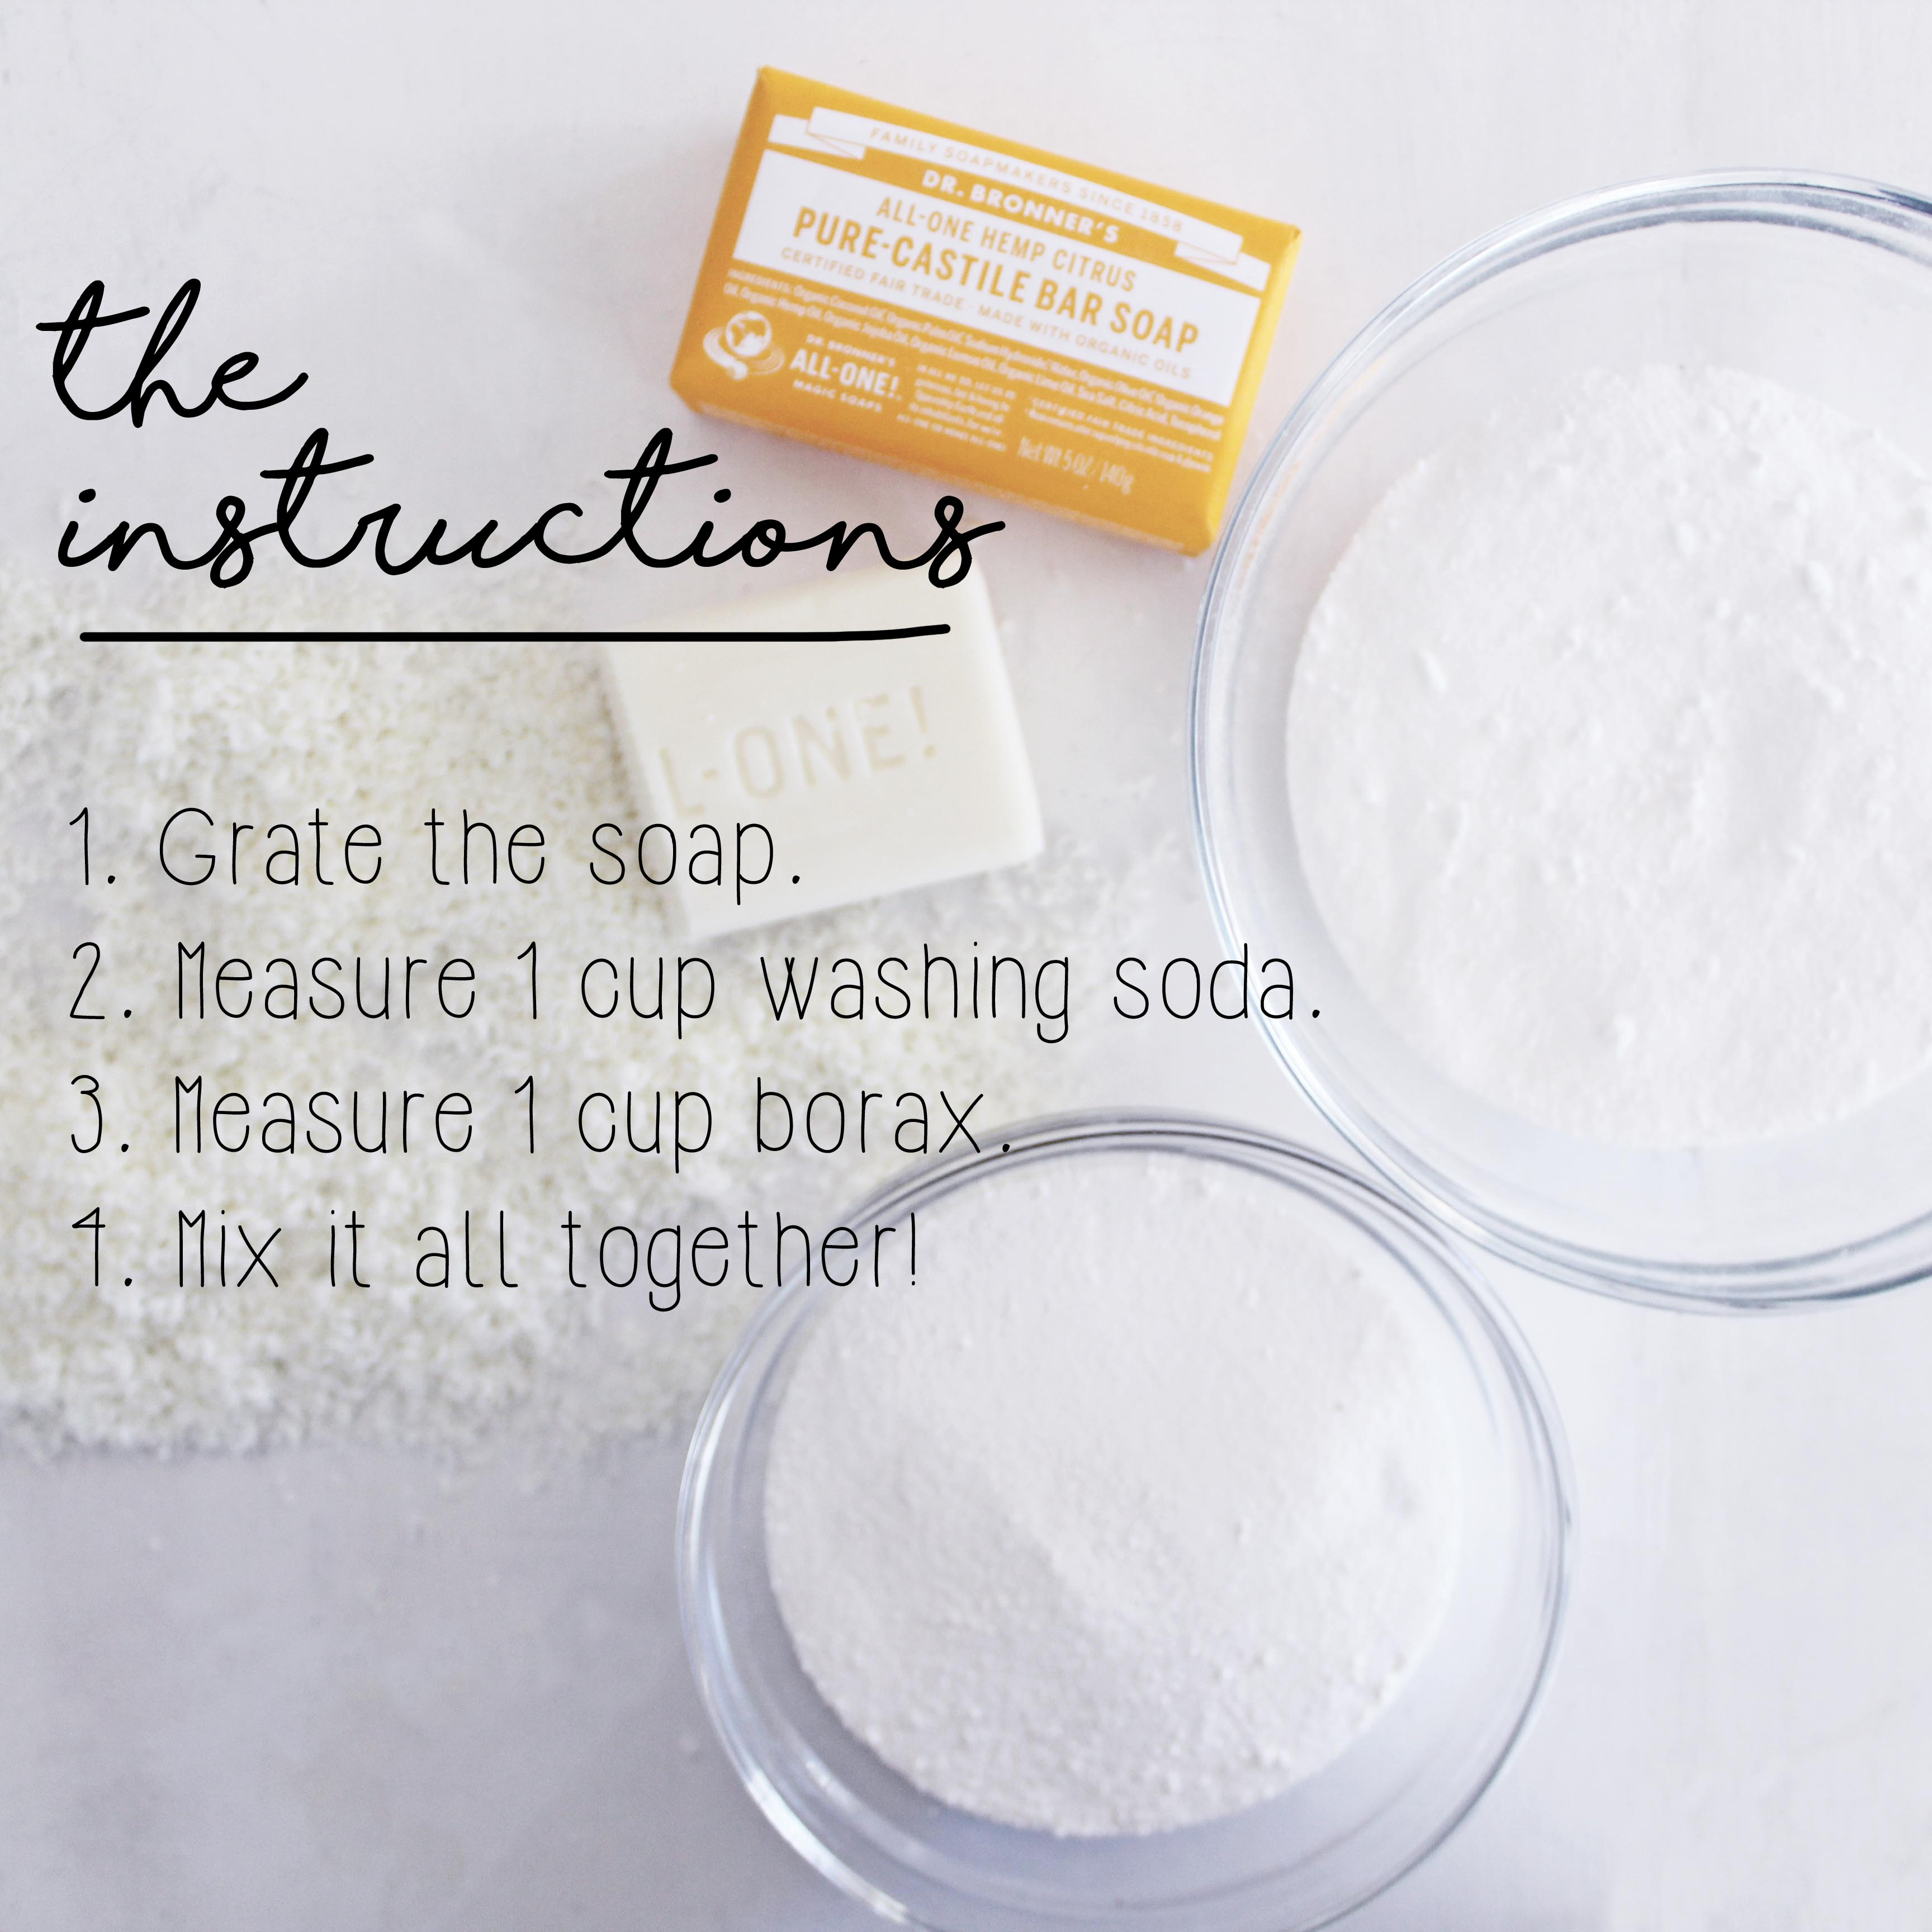 How To Make DIY Laundry Soap Instructions